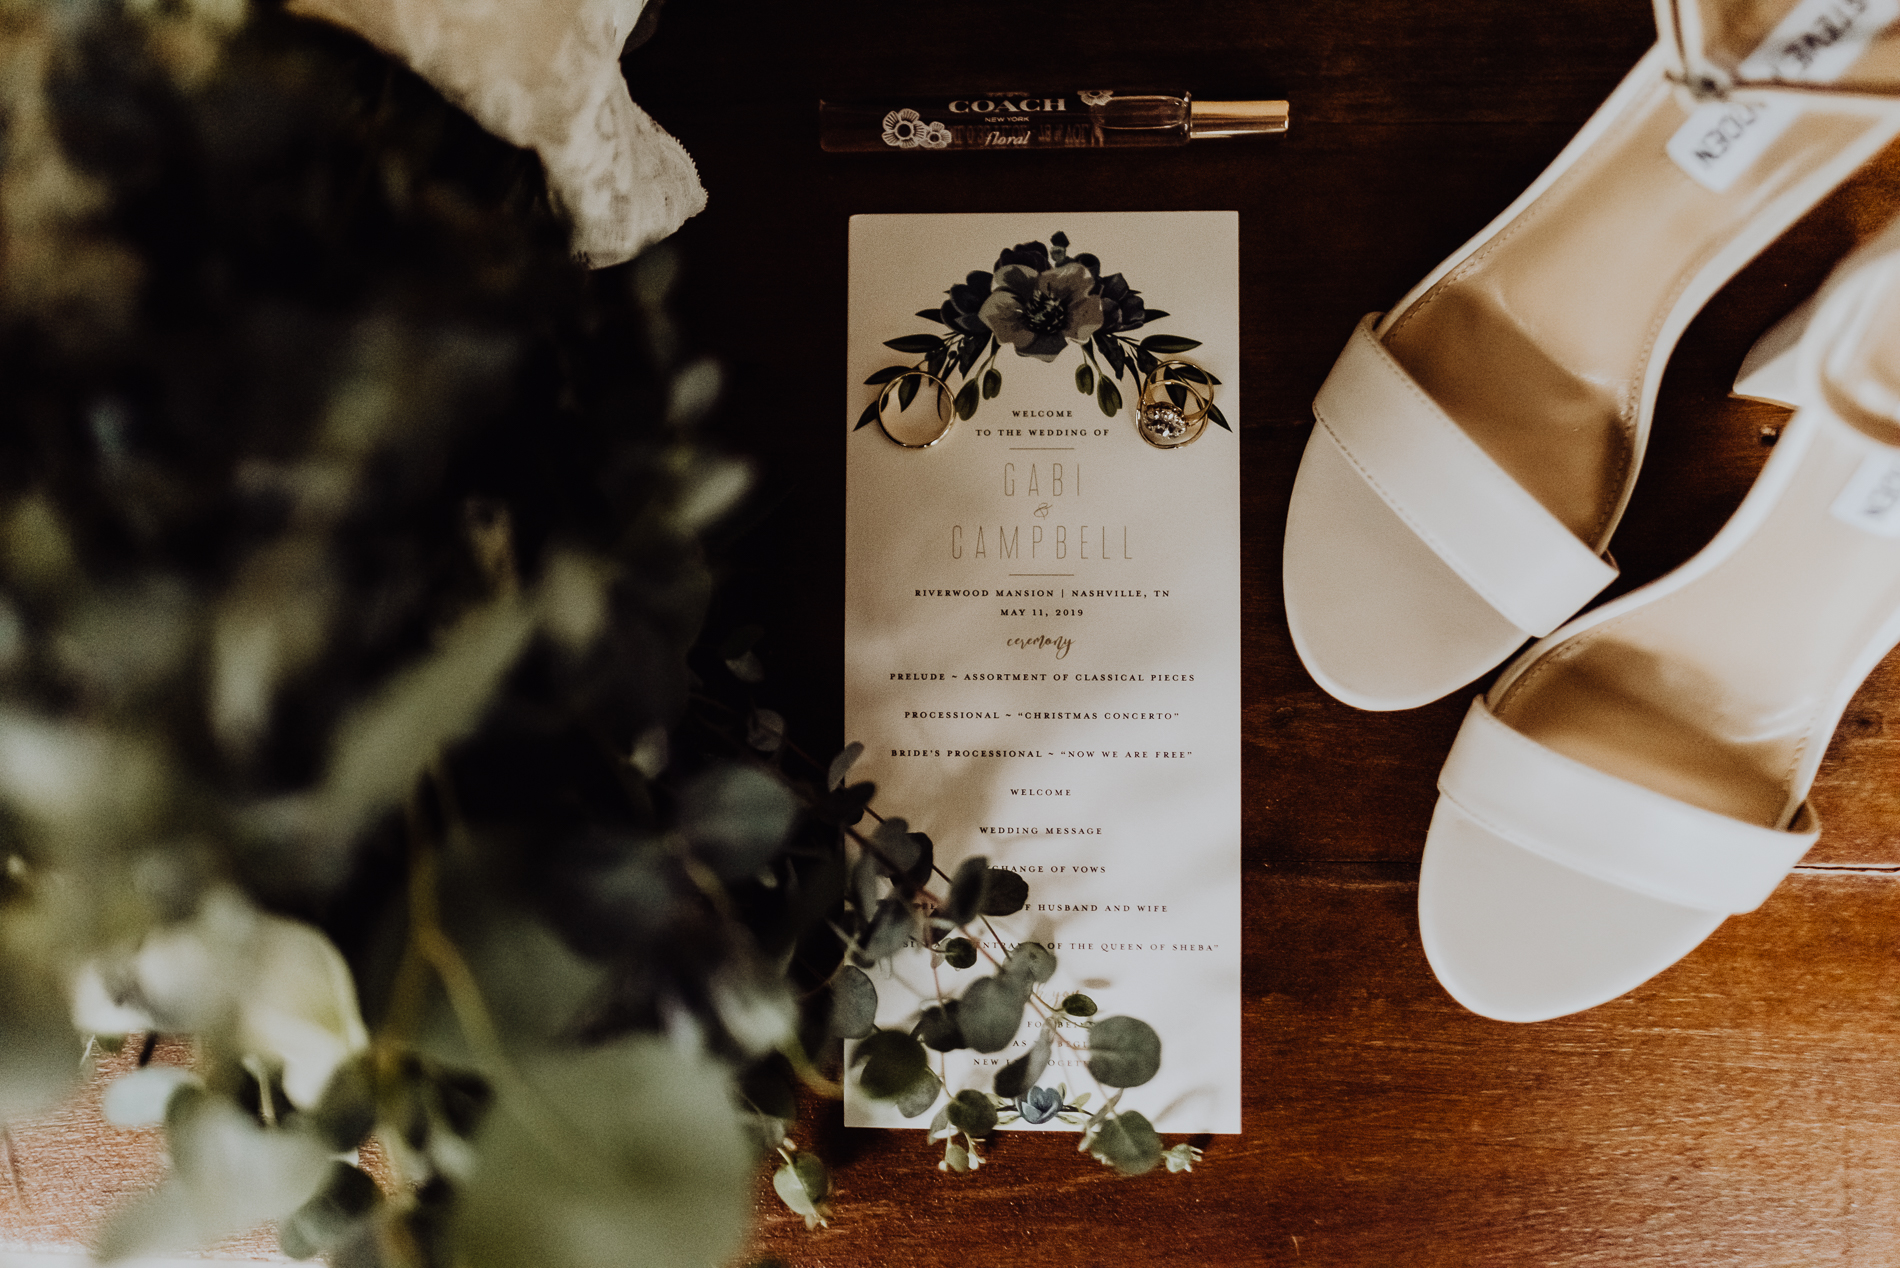 gabi and campbell east nashville wedding at riverwood mansion by wilde company-3.jpg